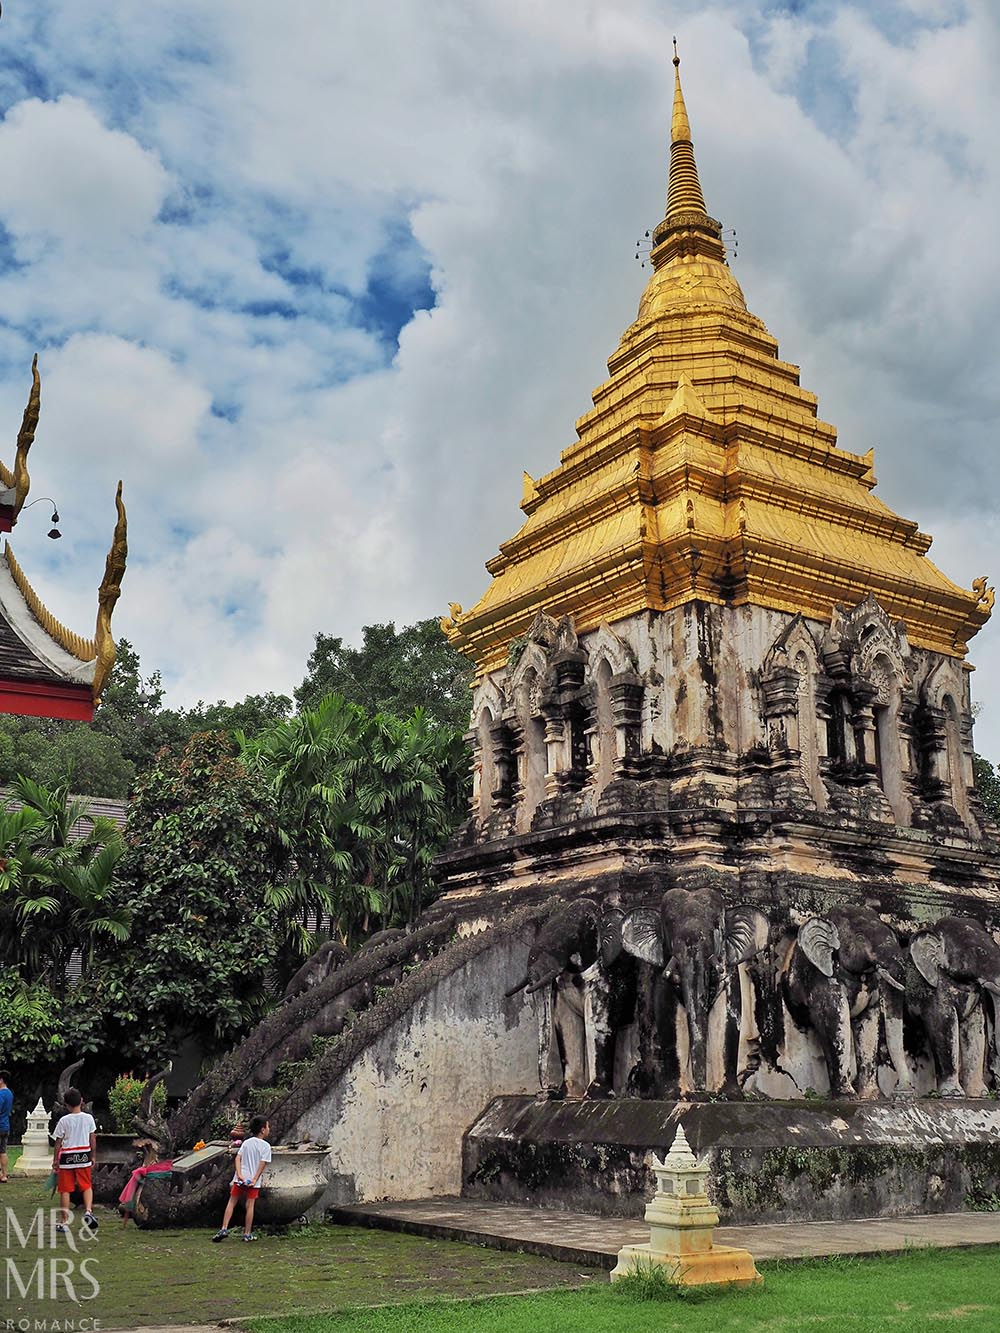 Bangkok and Chiang Mai, Thailand - Weekly Edition - Wat Chiang Mun temple